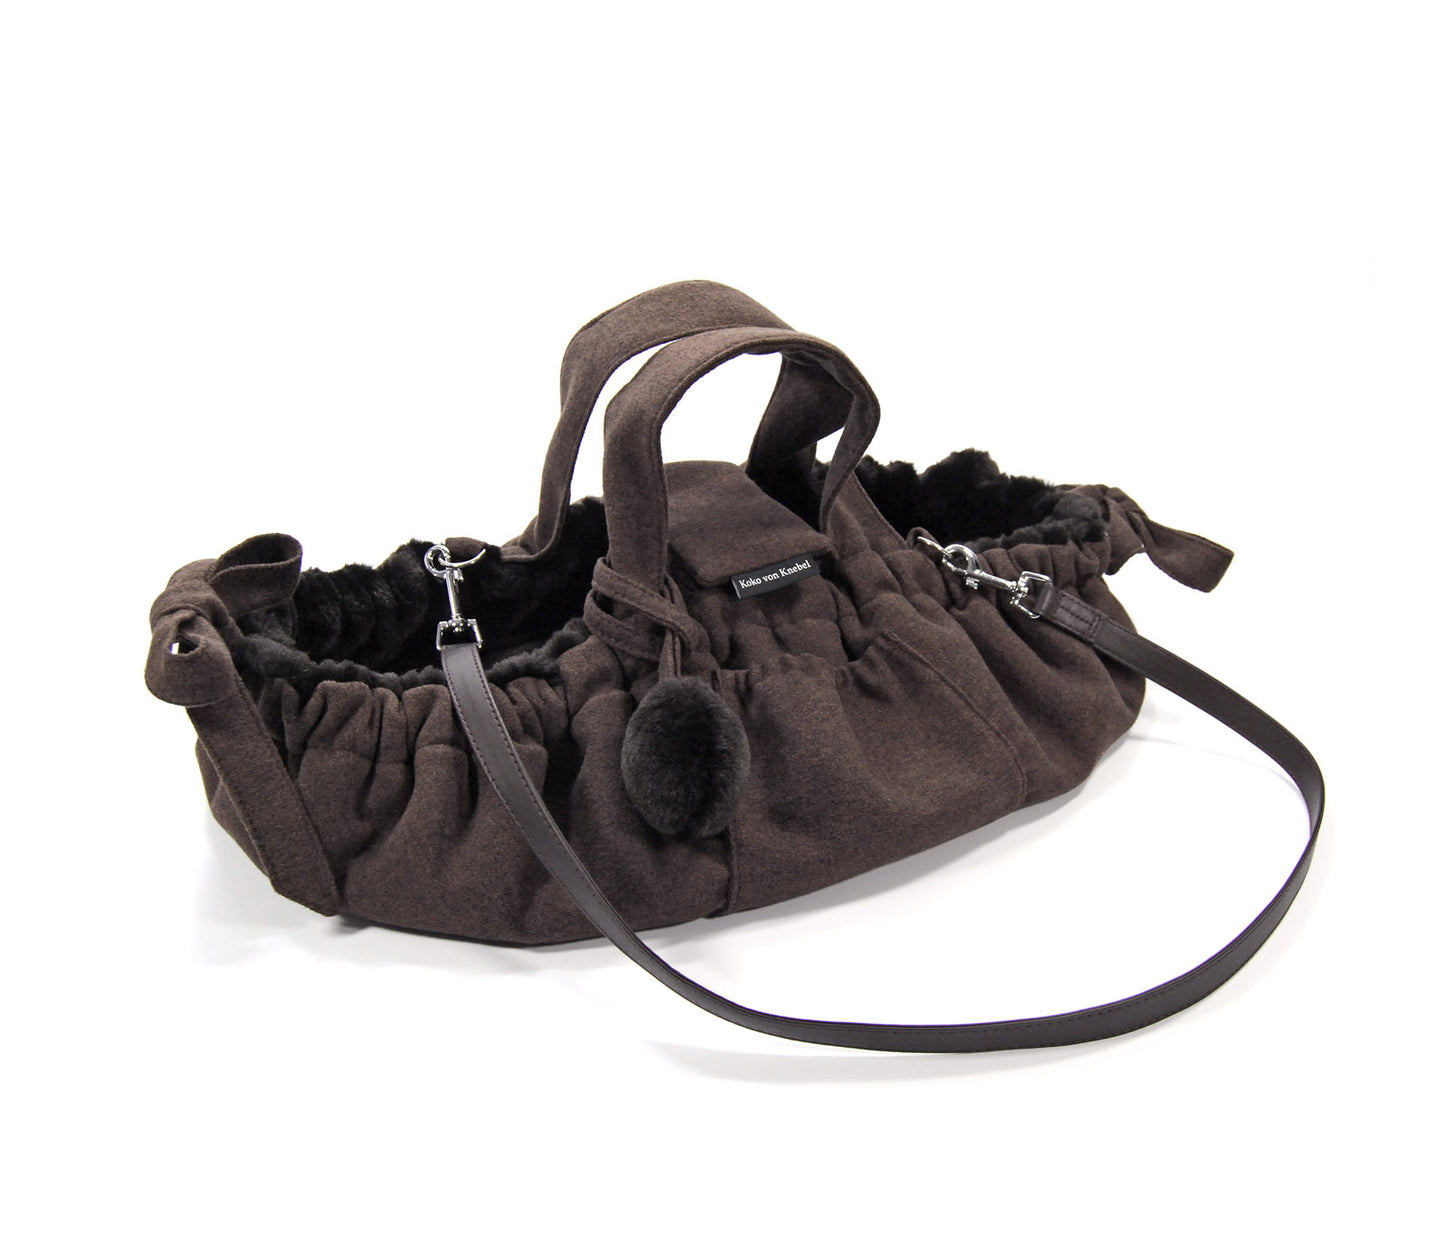 KvK Aida Hundetasche - Brown Fur